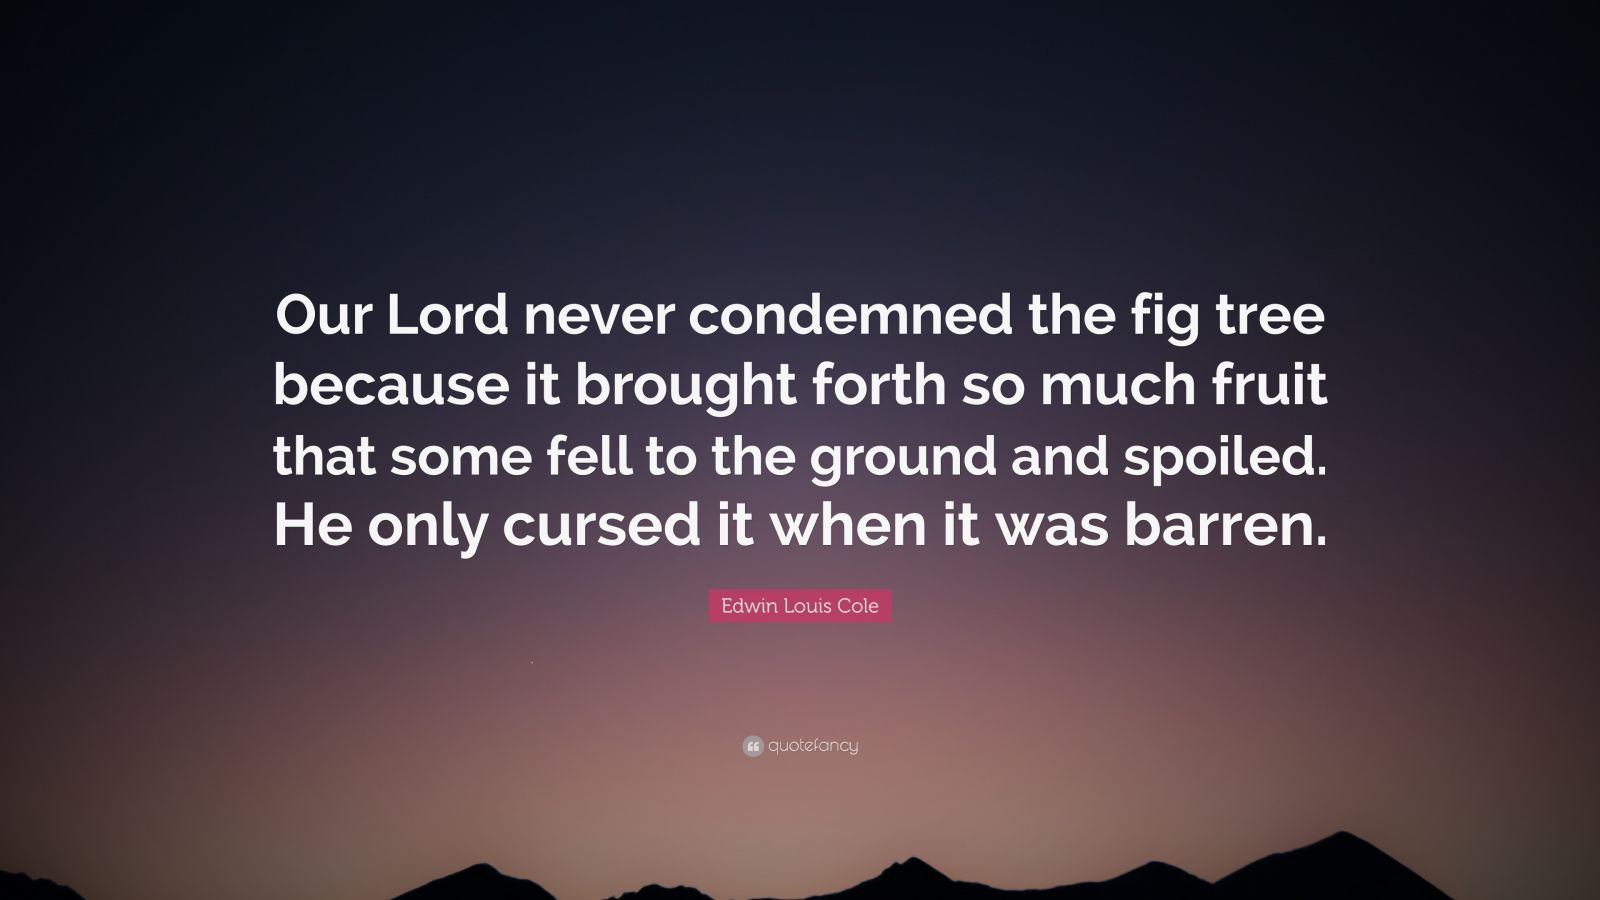 """Edwin Louis Cole Quote: """"Our Lord never condemned the fig tree because it brought forth so much fruit that some fell to the ground and spoiled. He only cursed it when it was barren."""""""